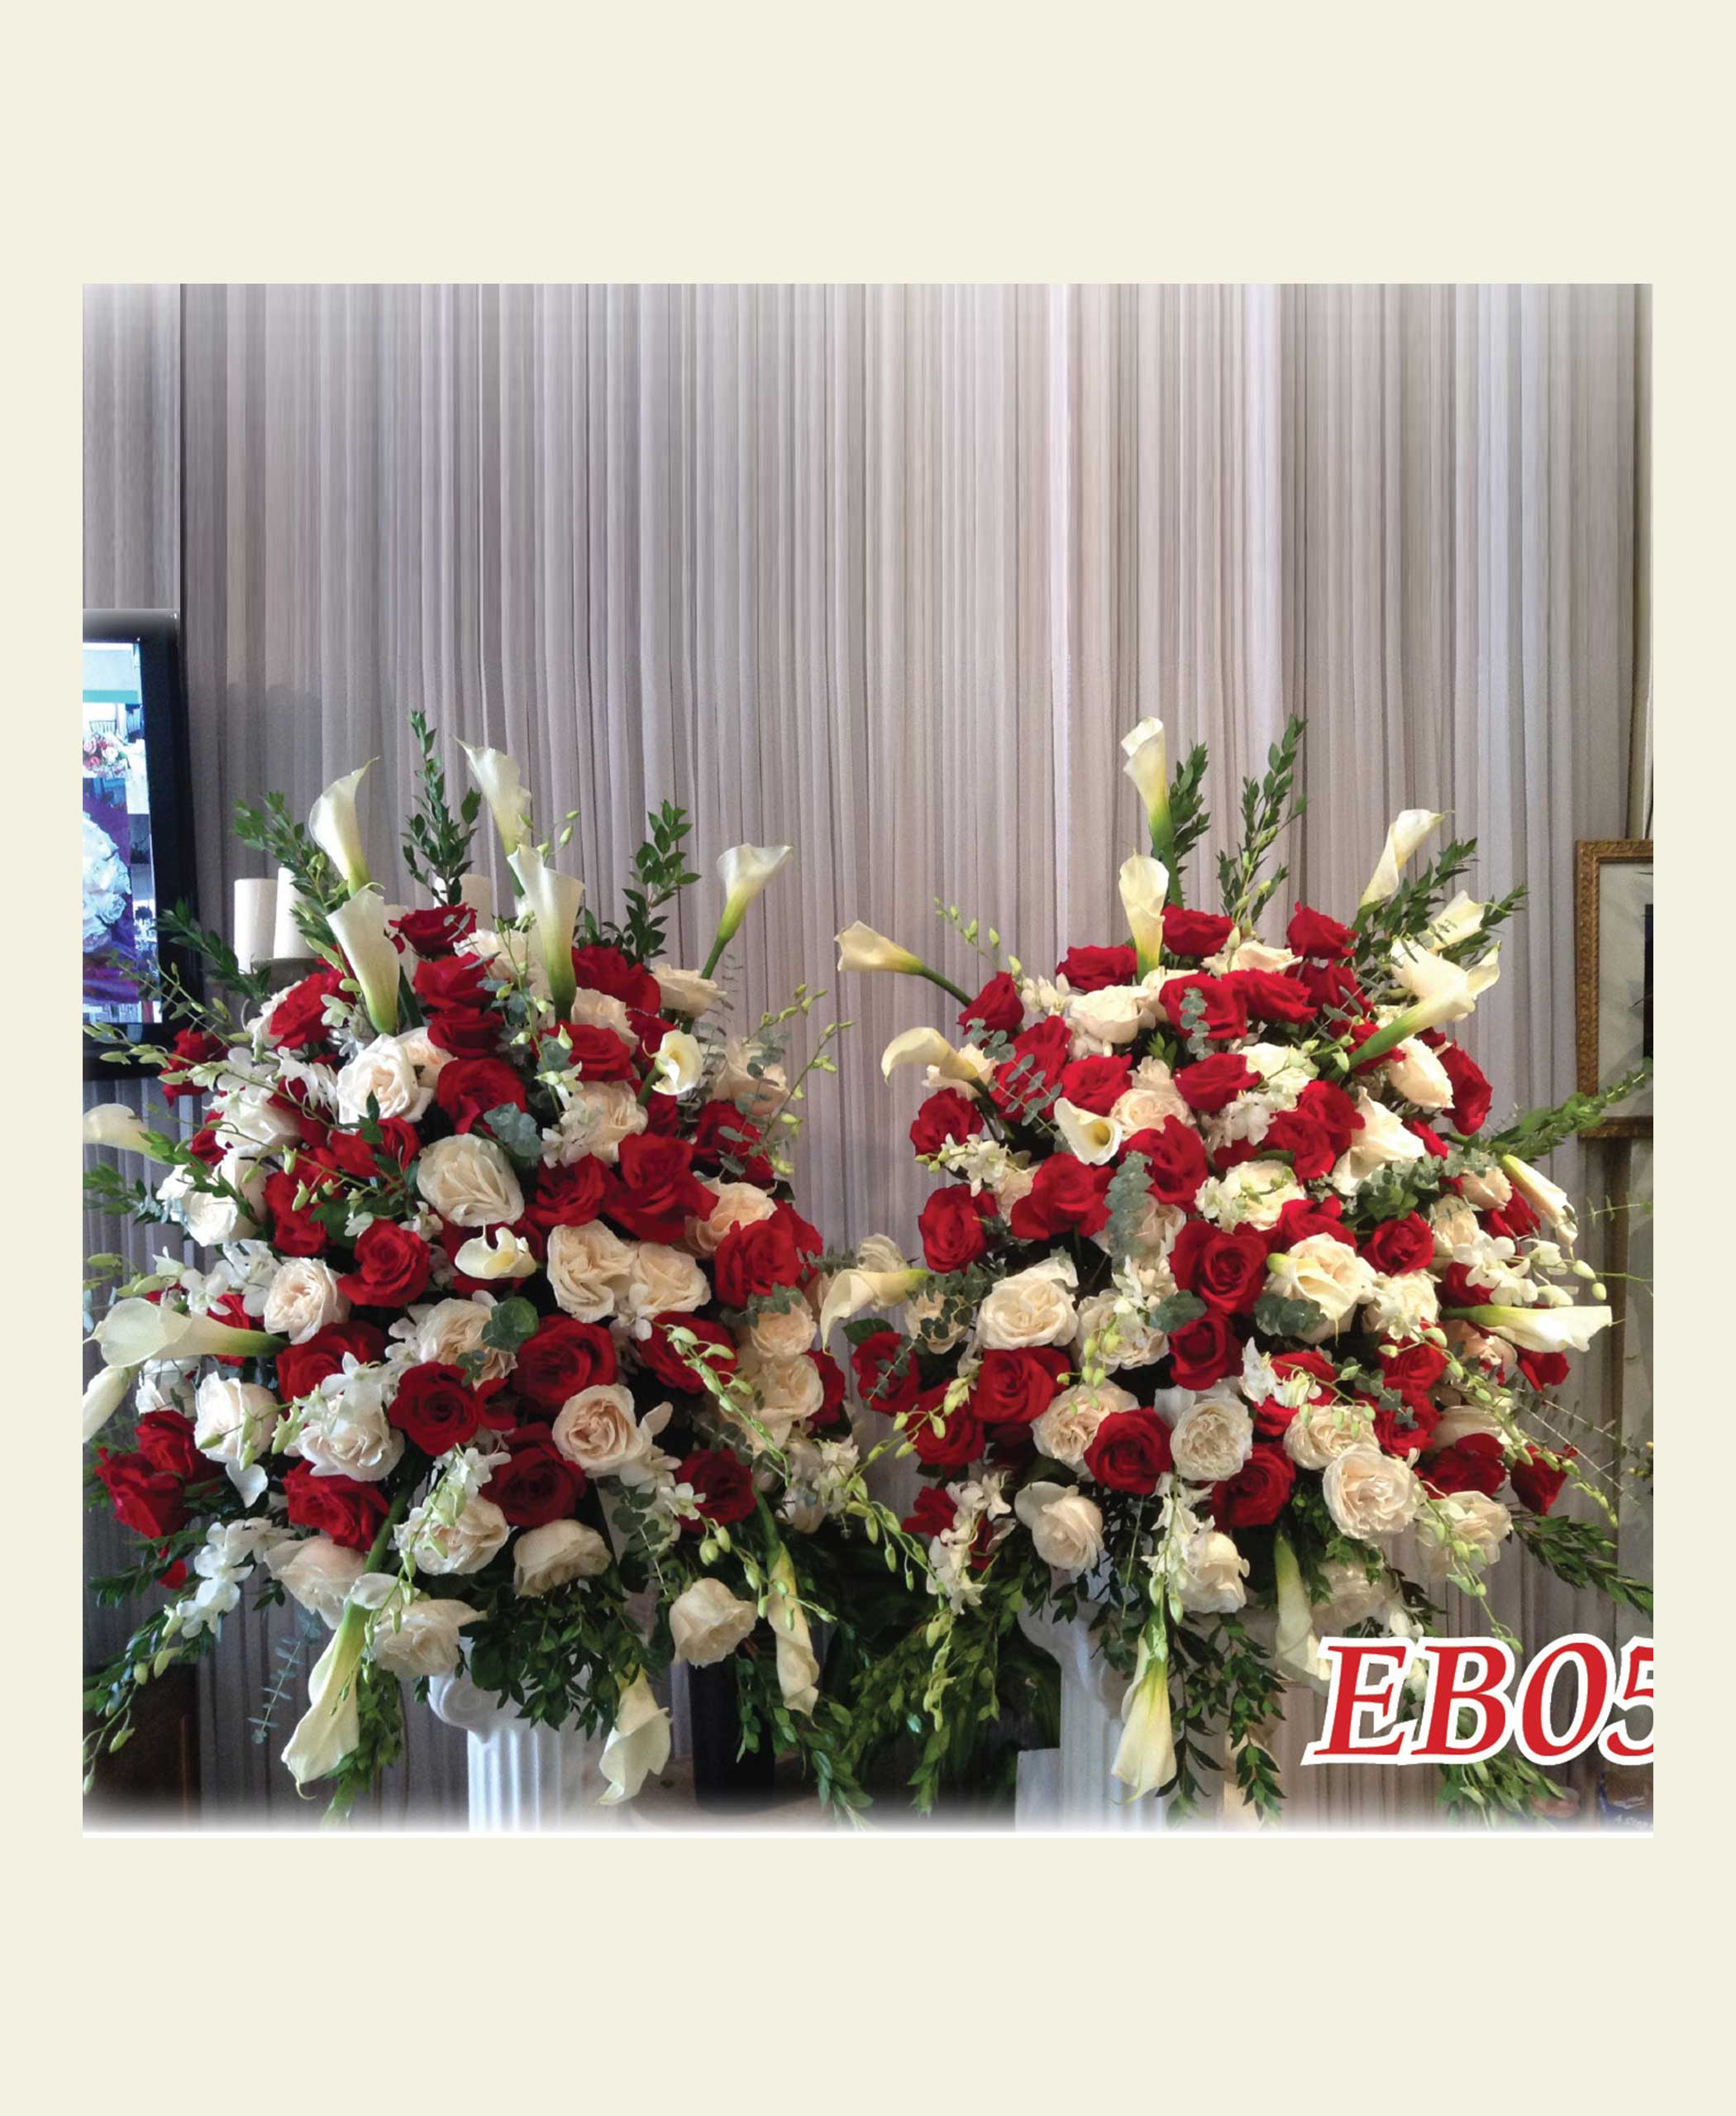 Eb0500 Red And White Rose Double Elegant Basket Floral Fantasy Us